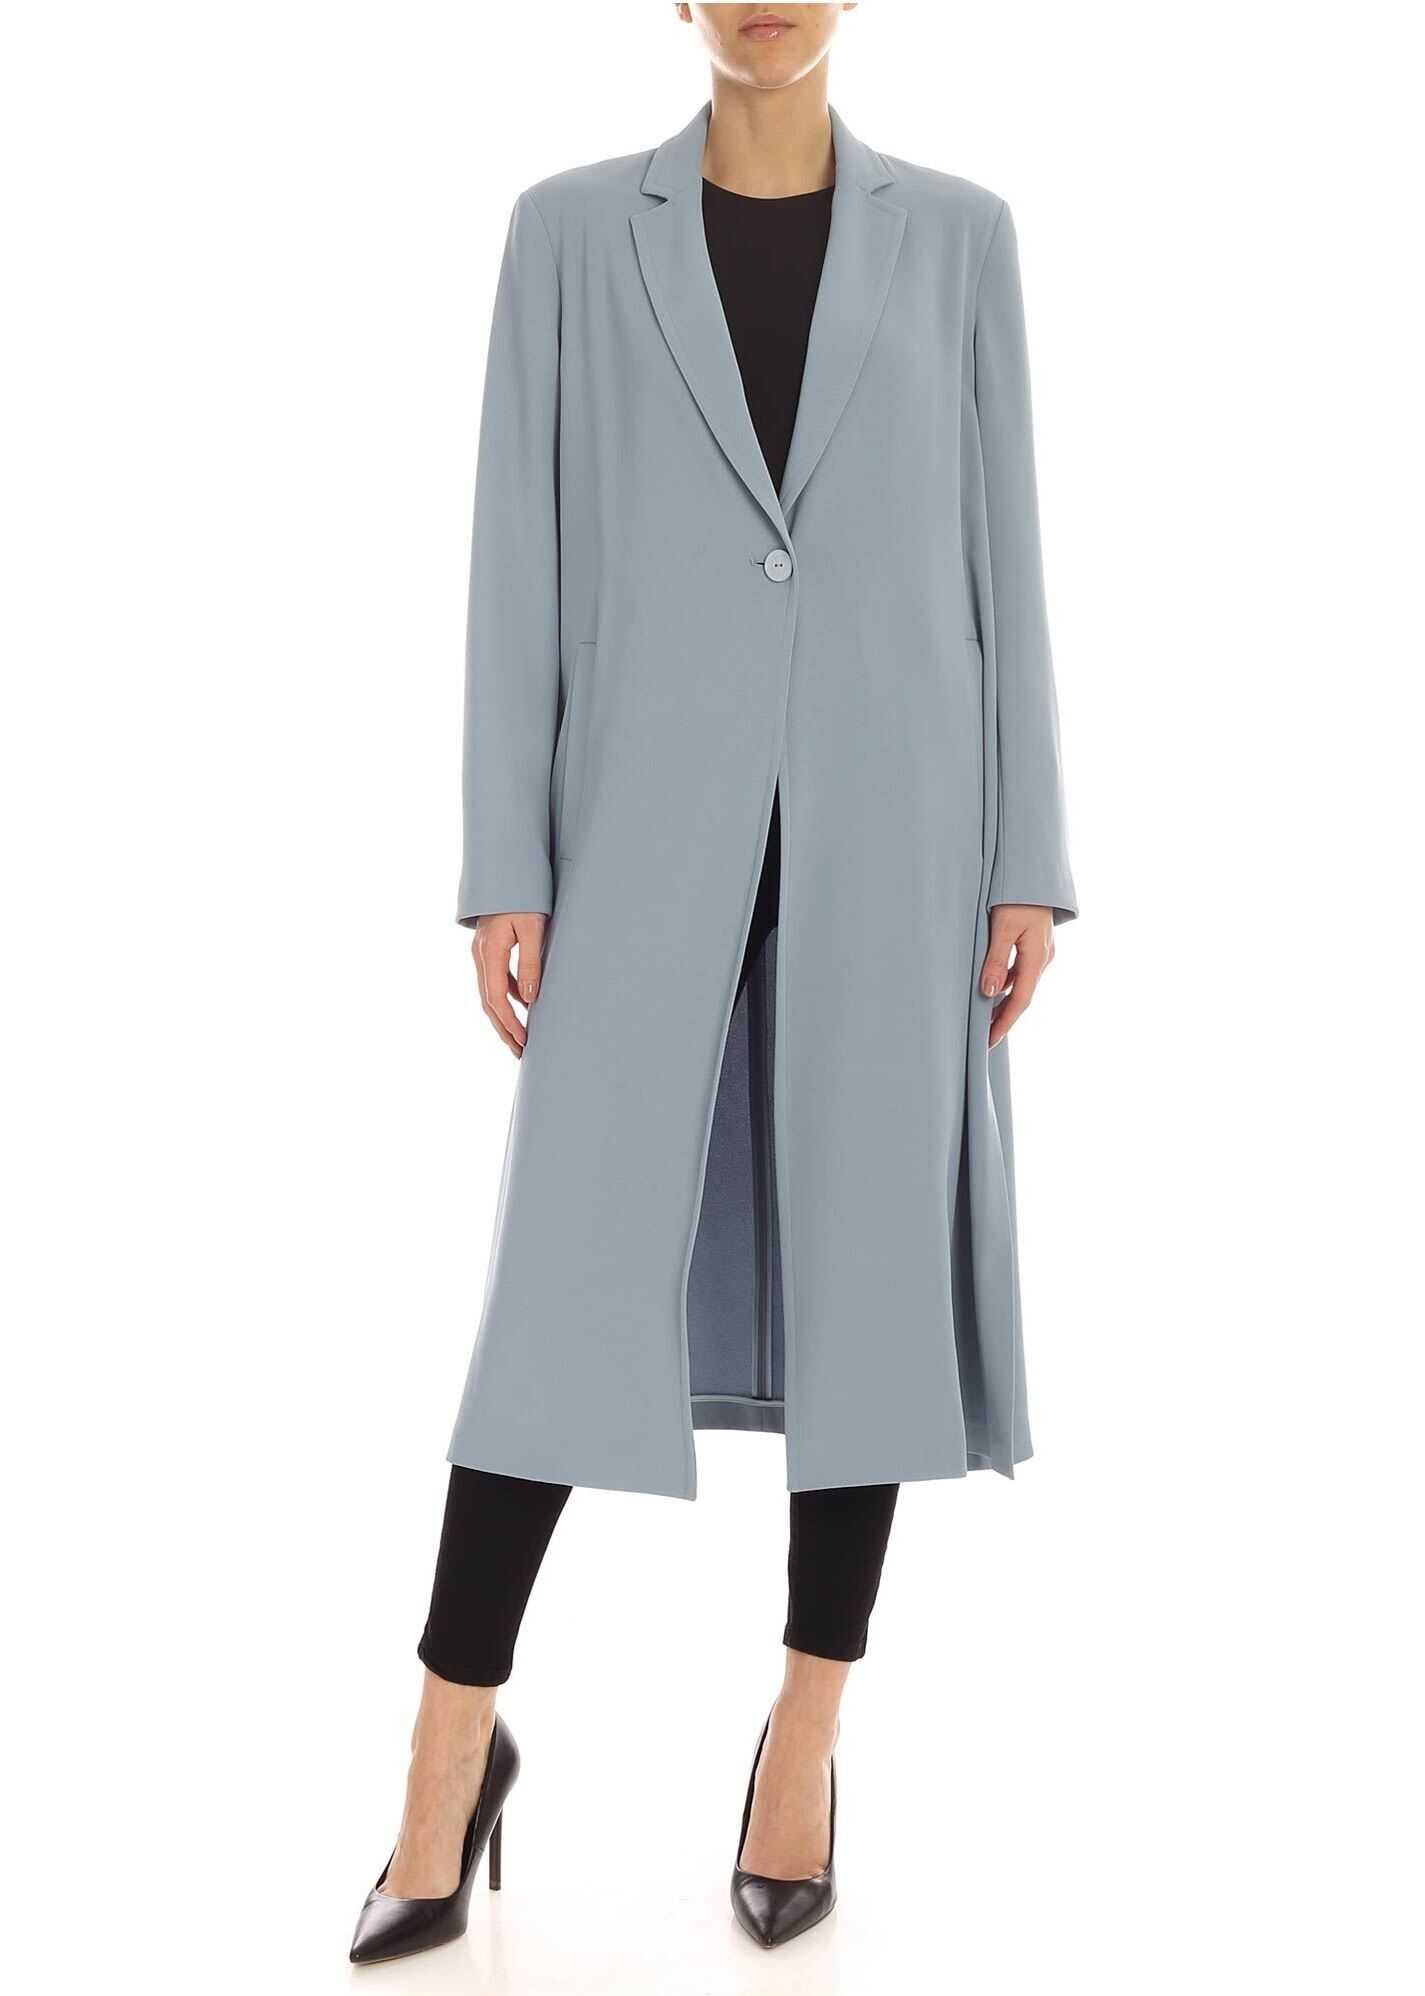 Dotto 2 Overcoat In Pale Blue Color thumbnail